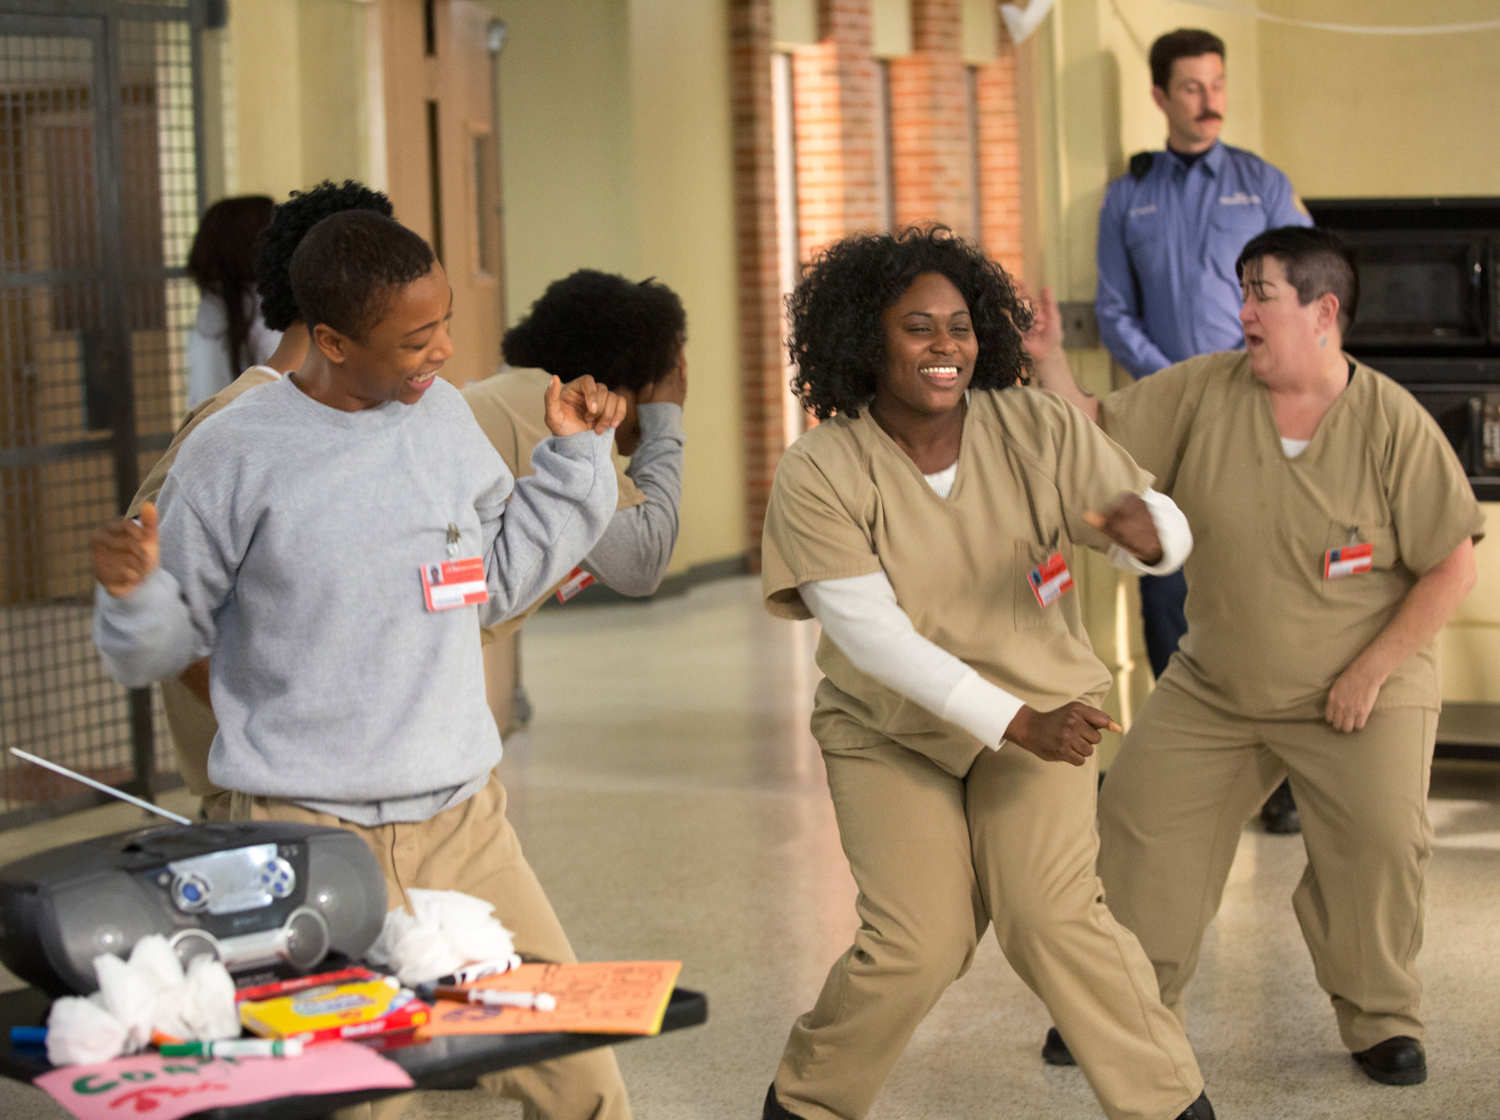 These 'Orange is the New Black' updates will get you through humpday